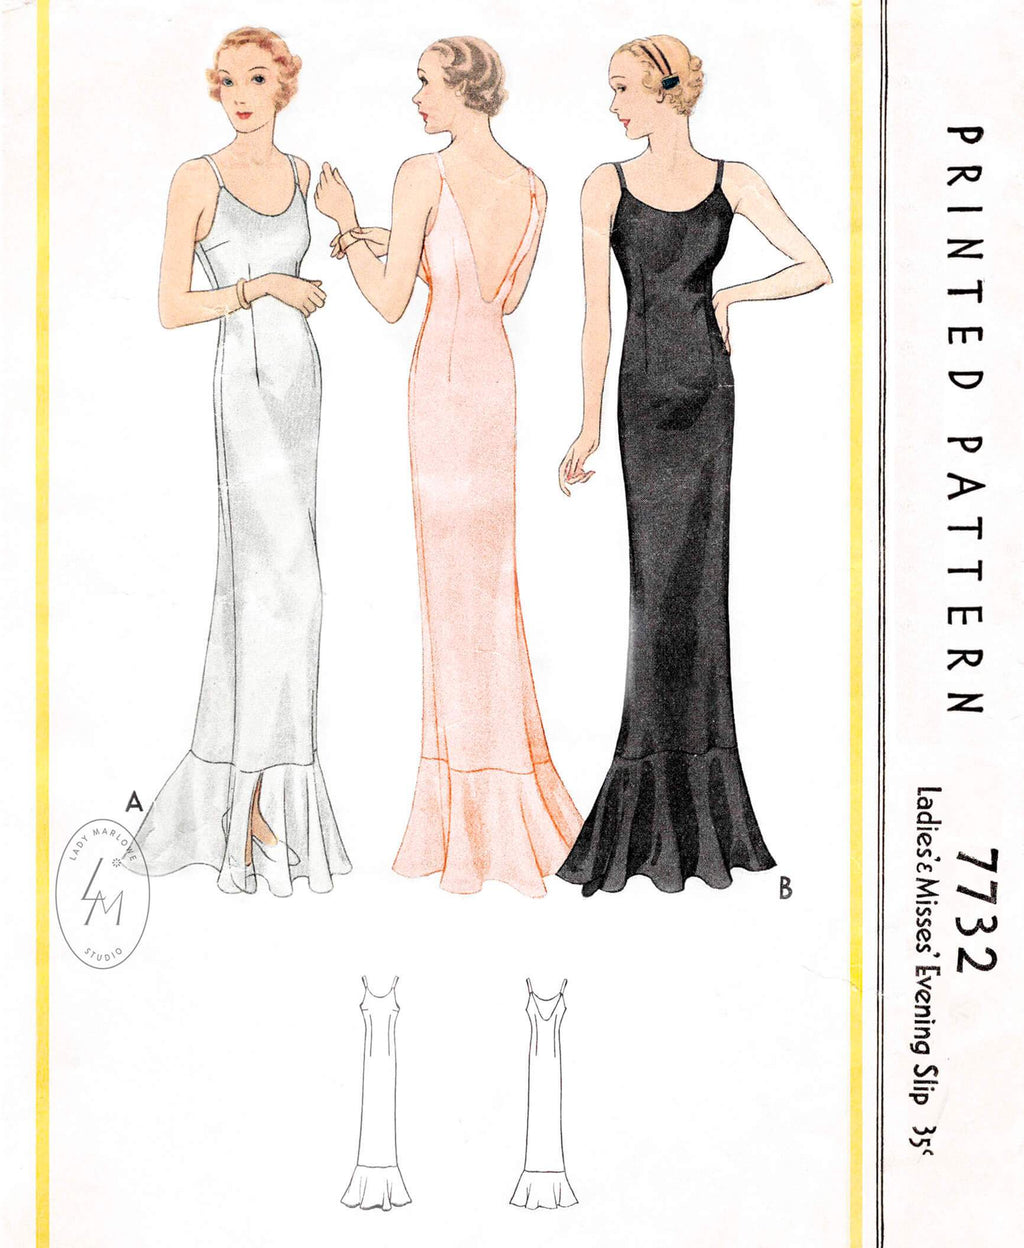 1930s 1934 evening gown length slip dress McCall 7732 low plunge back flounce hem vintage sewing pattern reproduction